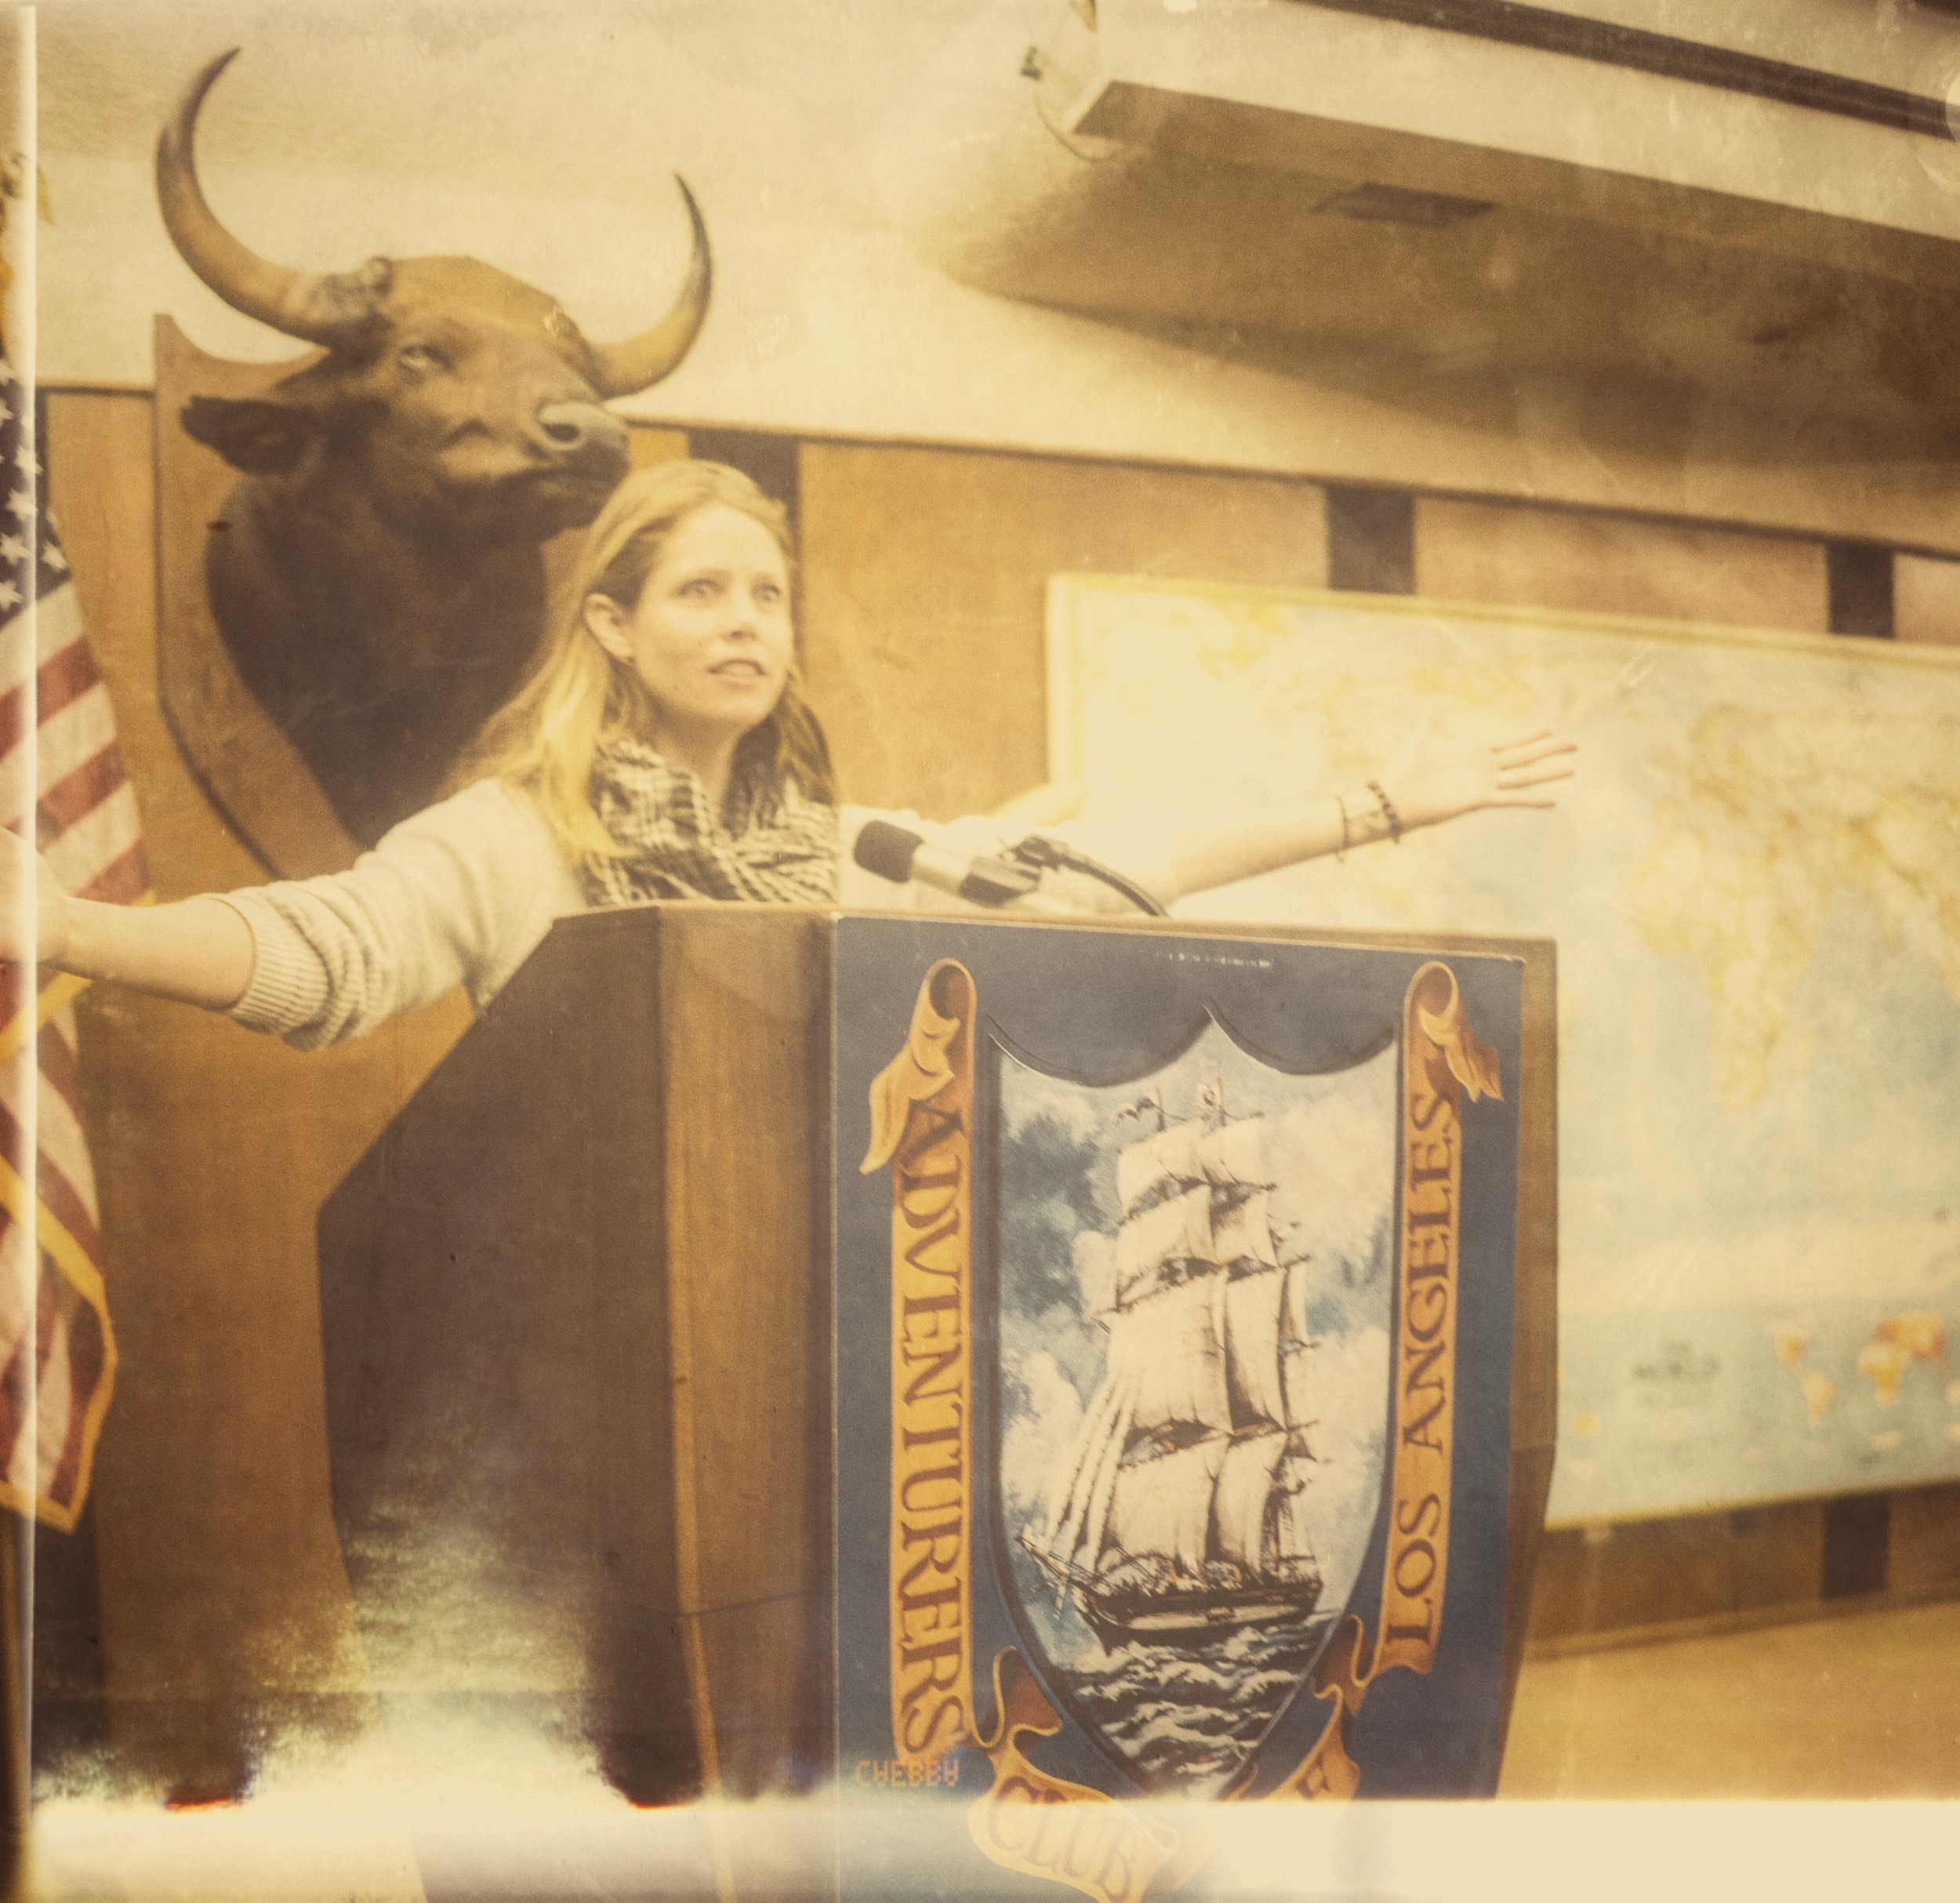 Speaking to the ENTIRE room at the Adventurers' Club of Los Angeles